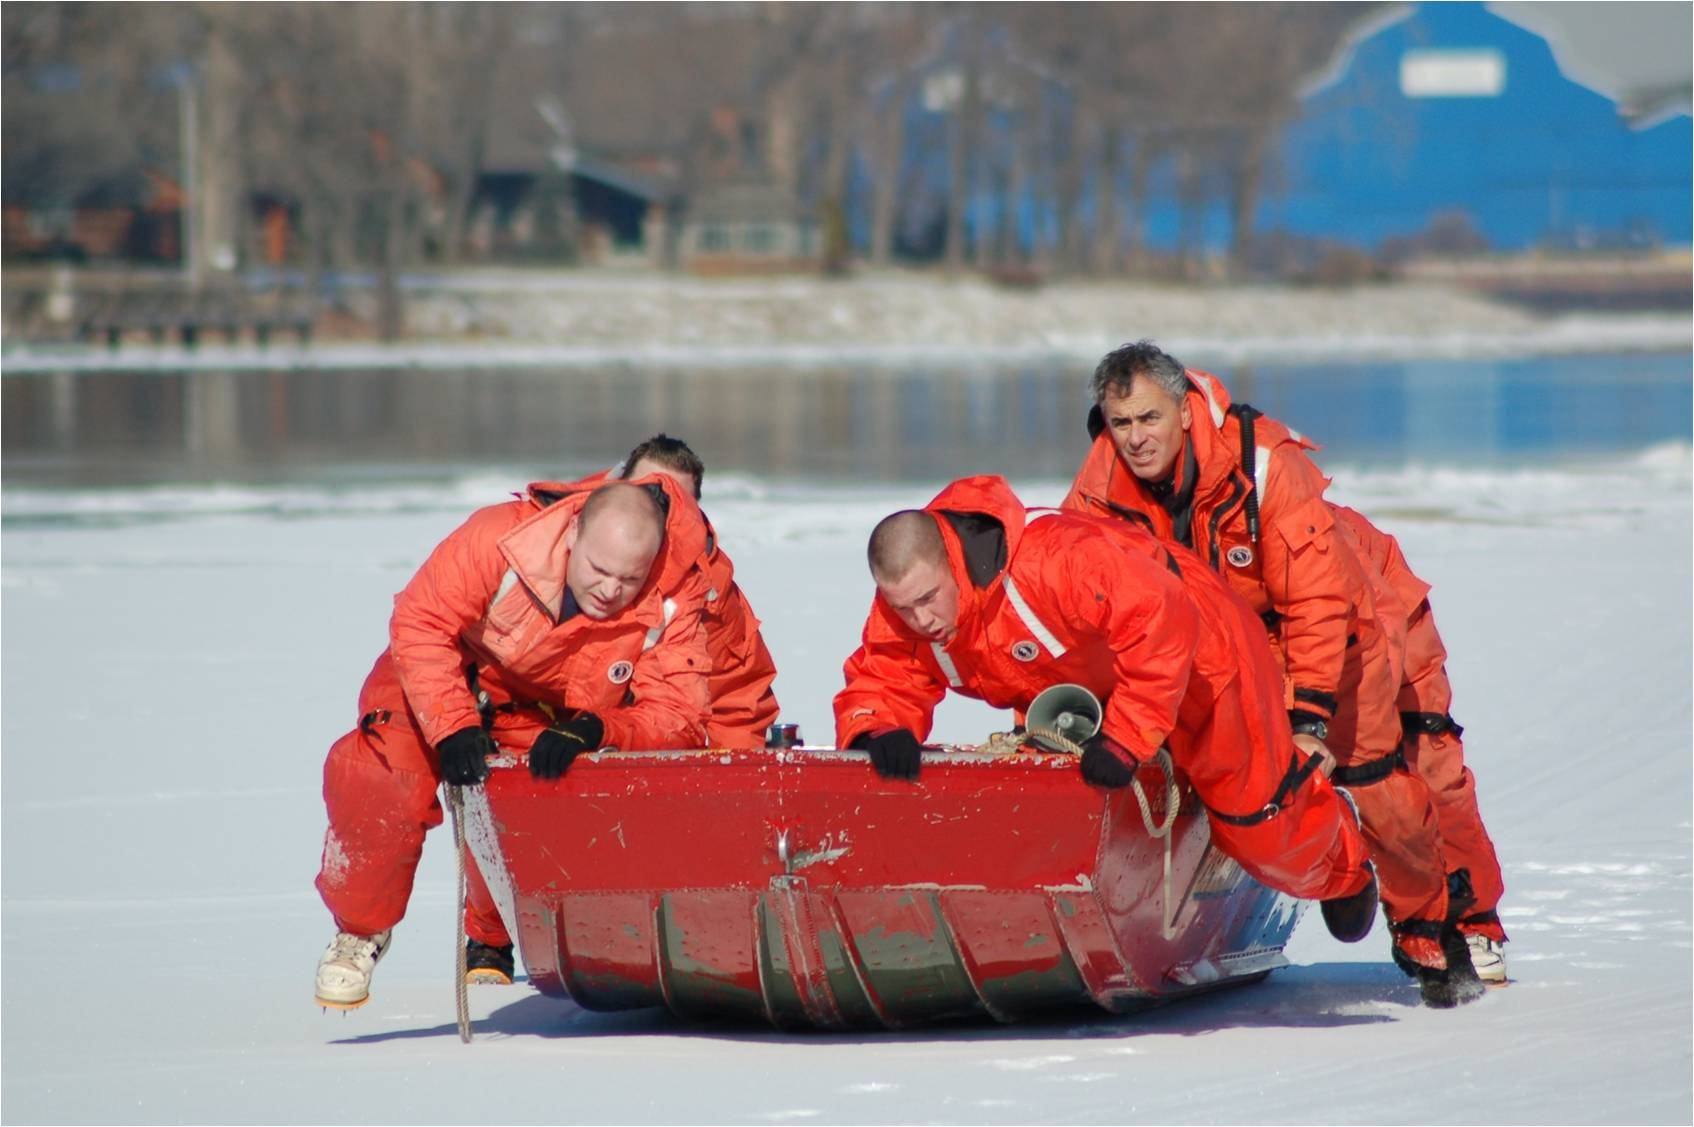 four firefighters practicing ice water rescue